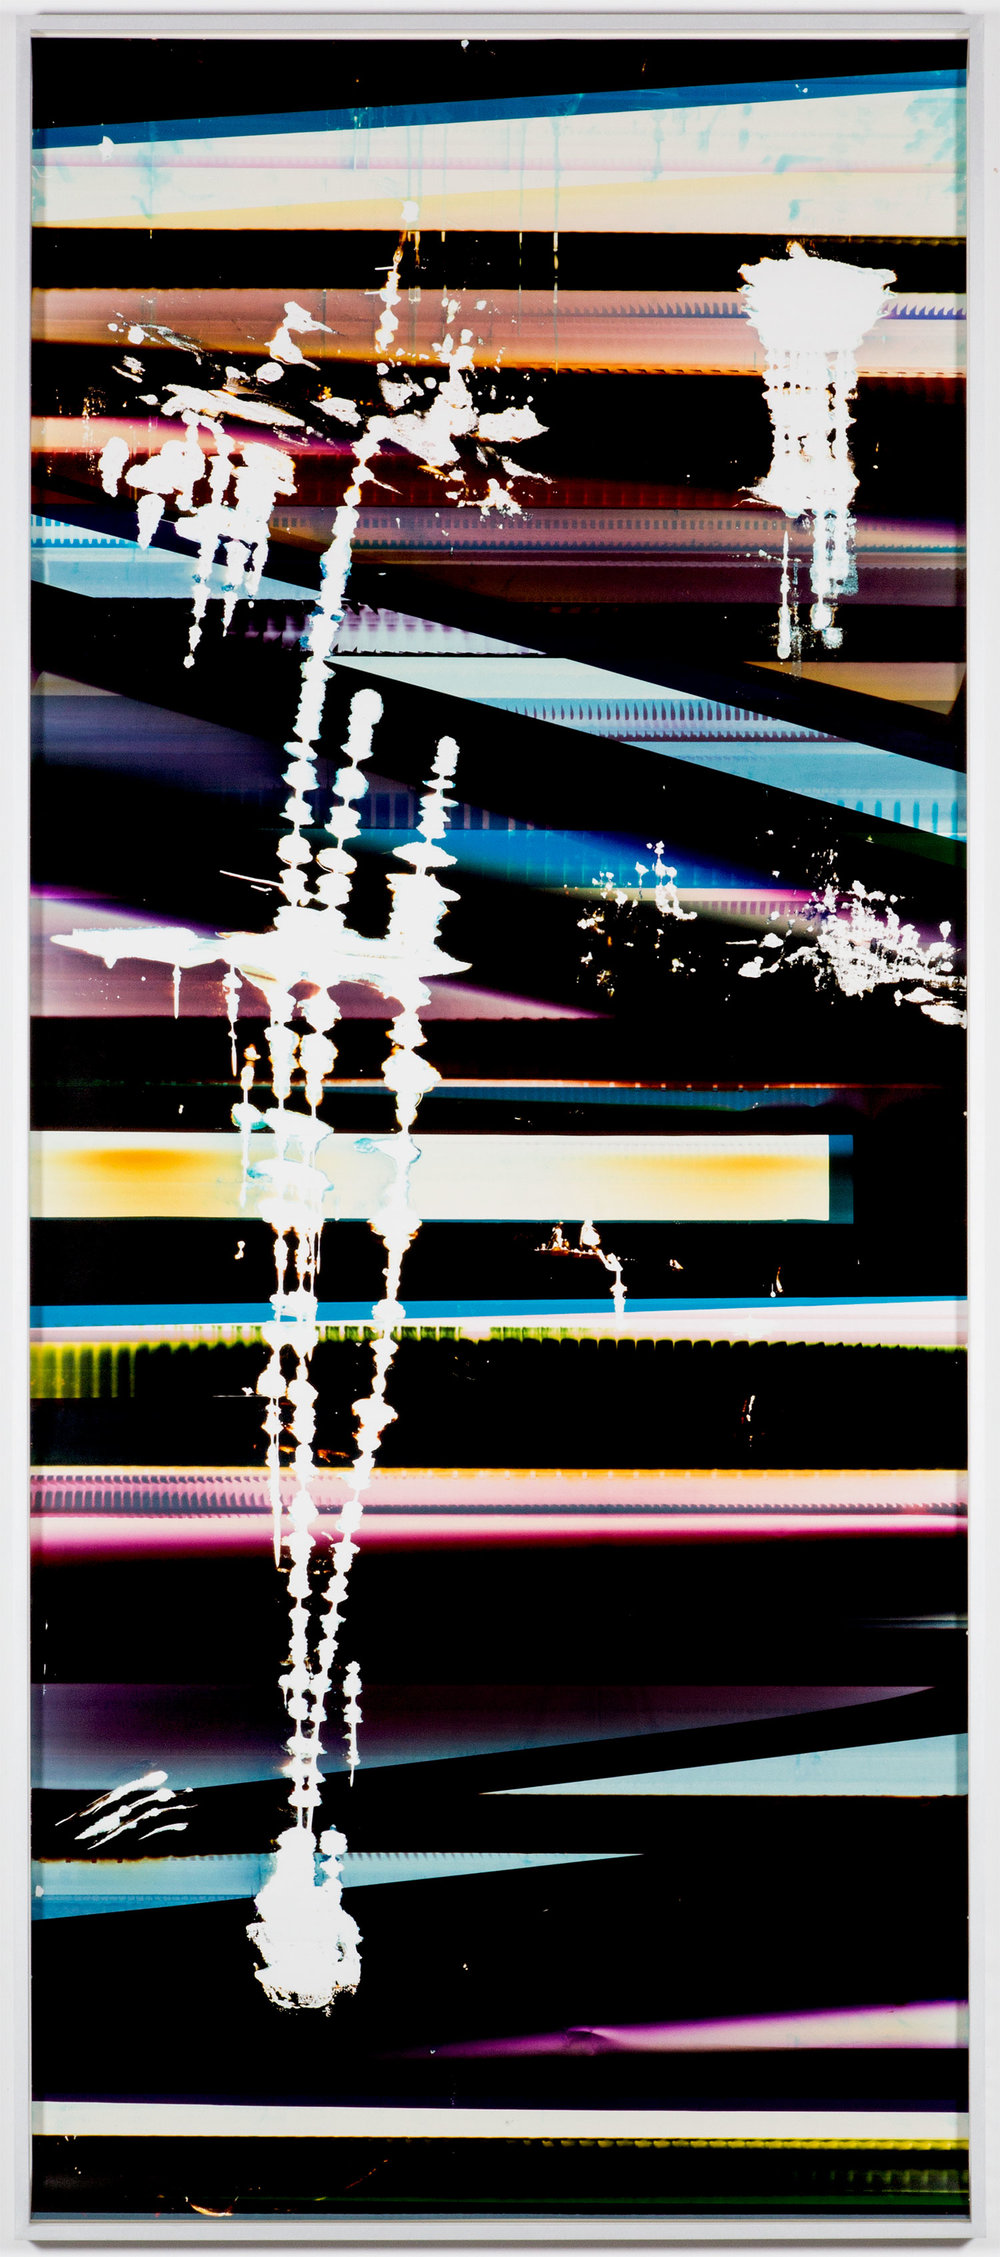 Cross-Contaminated RA4 Contact Print (9:6/CYM/Six Magnet: Los Angeles, California, January 27, 2014, Fuji Color Crystal Archive Super Type C, Em. No. 101-006, Kodak Ektacolor RA Bleach-Fix and Replenisher, Cat. No. 847 1484, 06214), Kreonite KM IV 5225 RA4 Color Processor, Ser. No. 00092174    2016   Color photographic paper  119 3/4 x51 1/2 inches   RA4 Contact Prints, 2014–